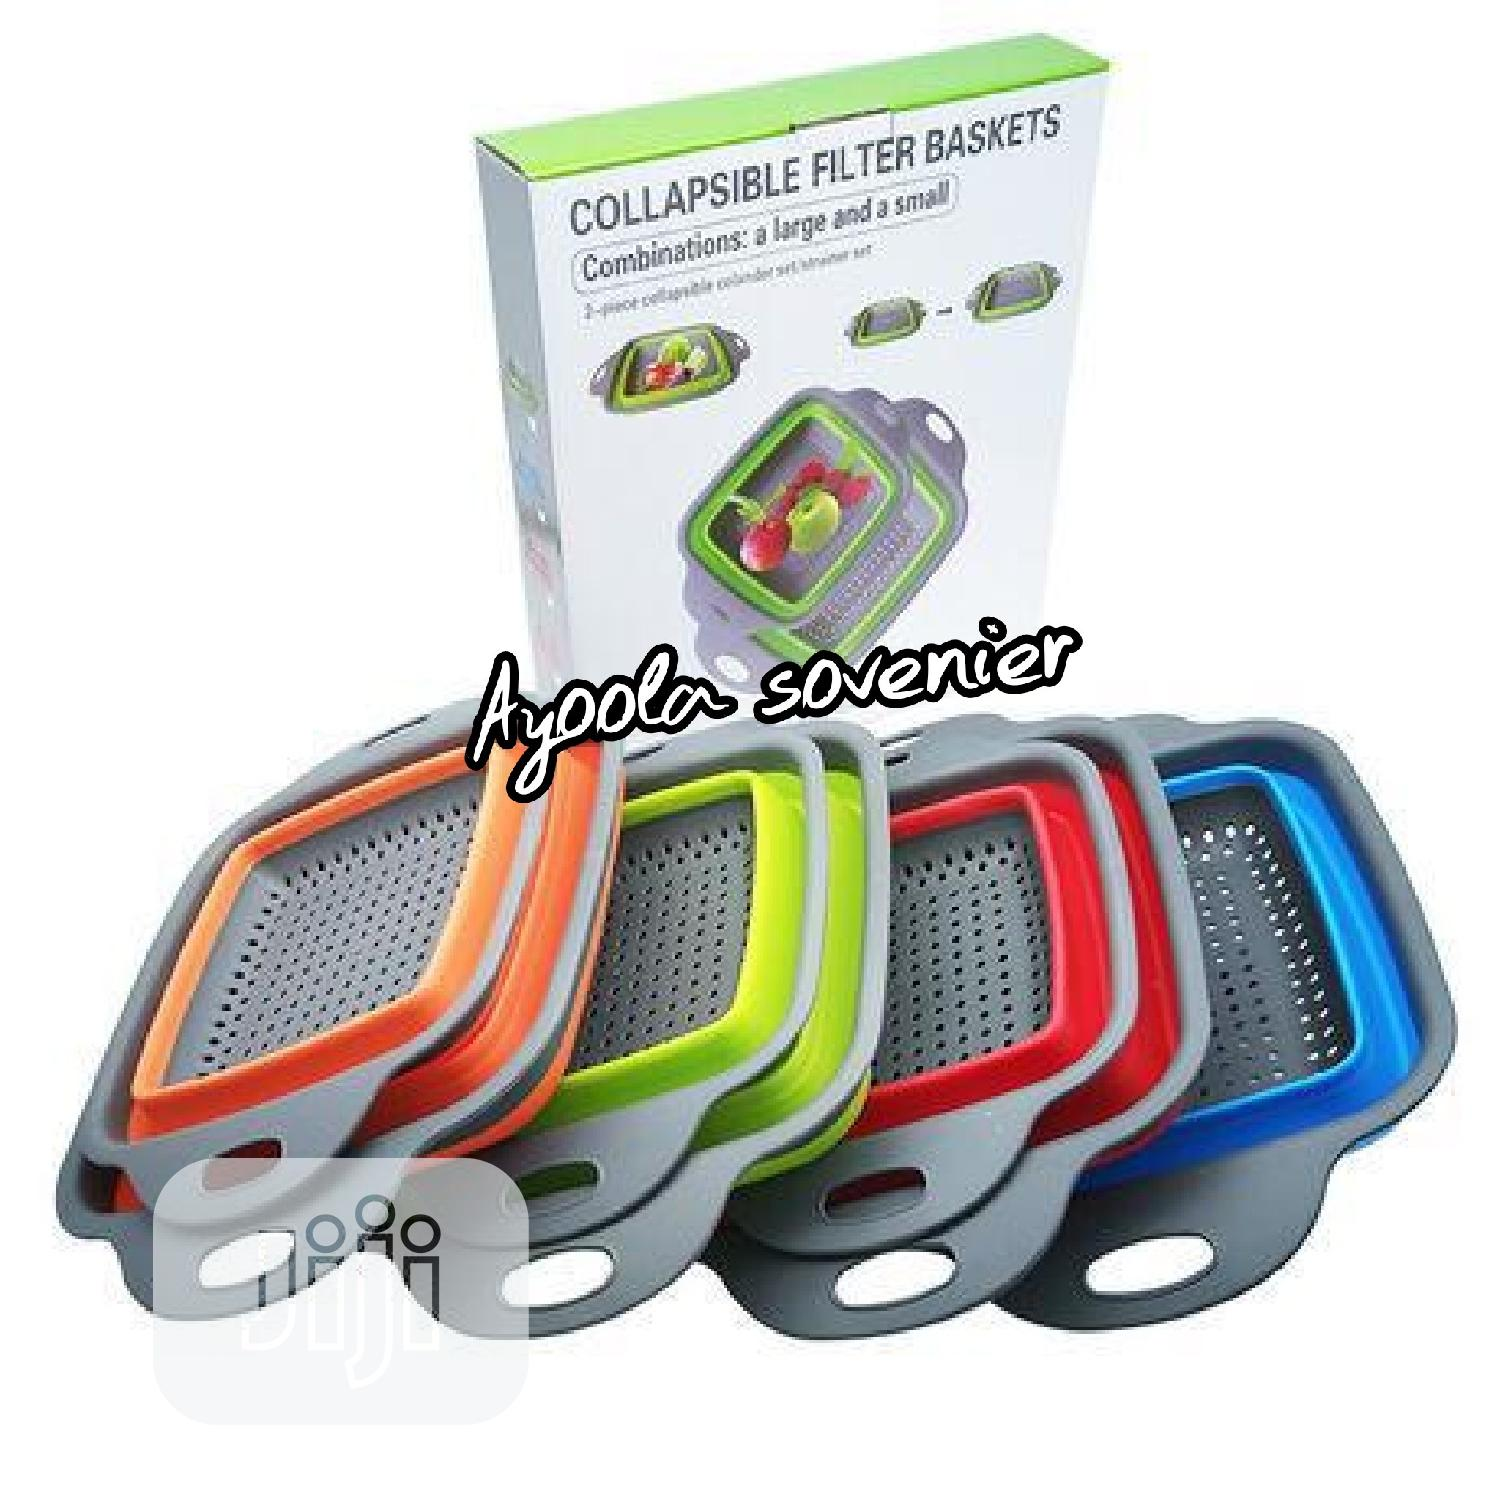 2in1 Collapsible Filters Basket